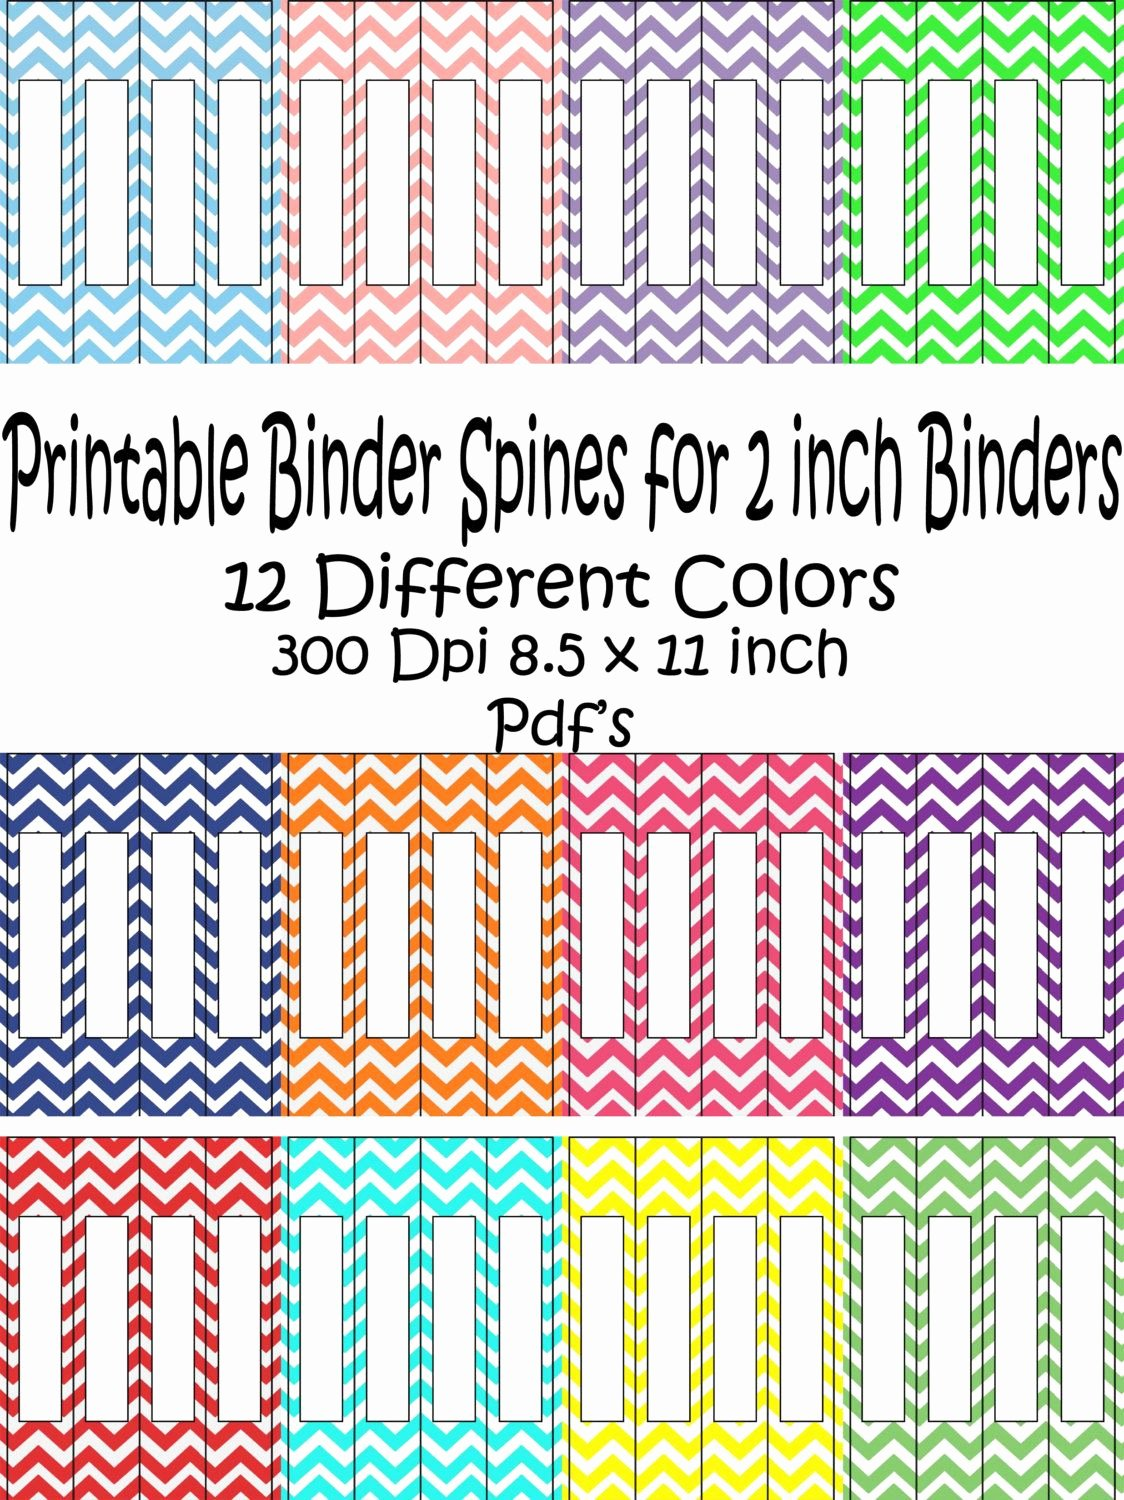 Binder Label Template Free Unique Printable Binder Spine Pack Size 2 Inch 12 Different